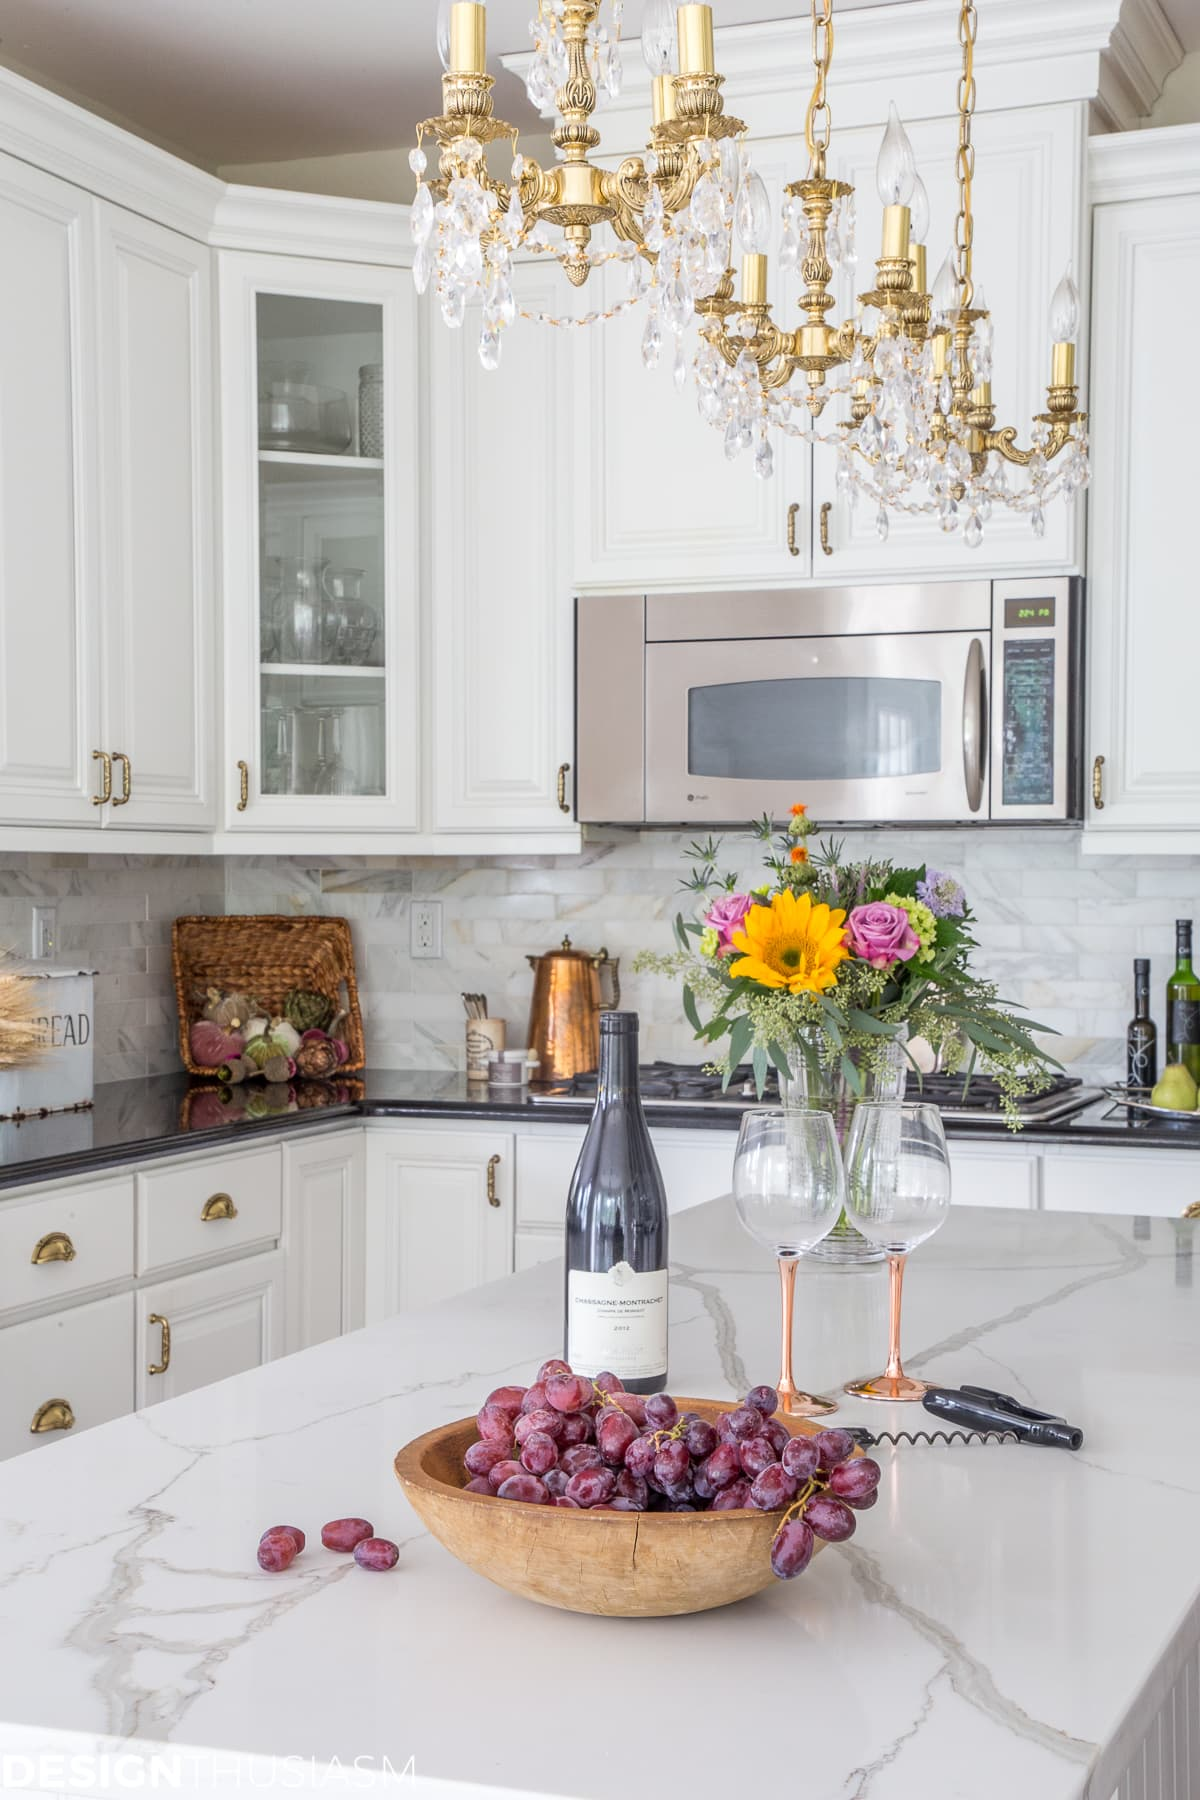 Fall Decorating: Warm Autumn Decor Ideas for the Kitchen